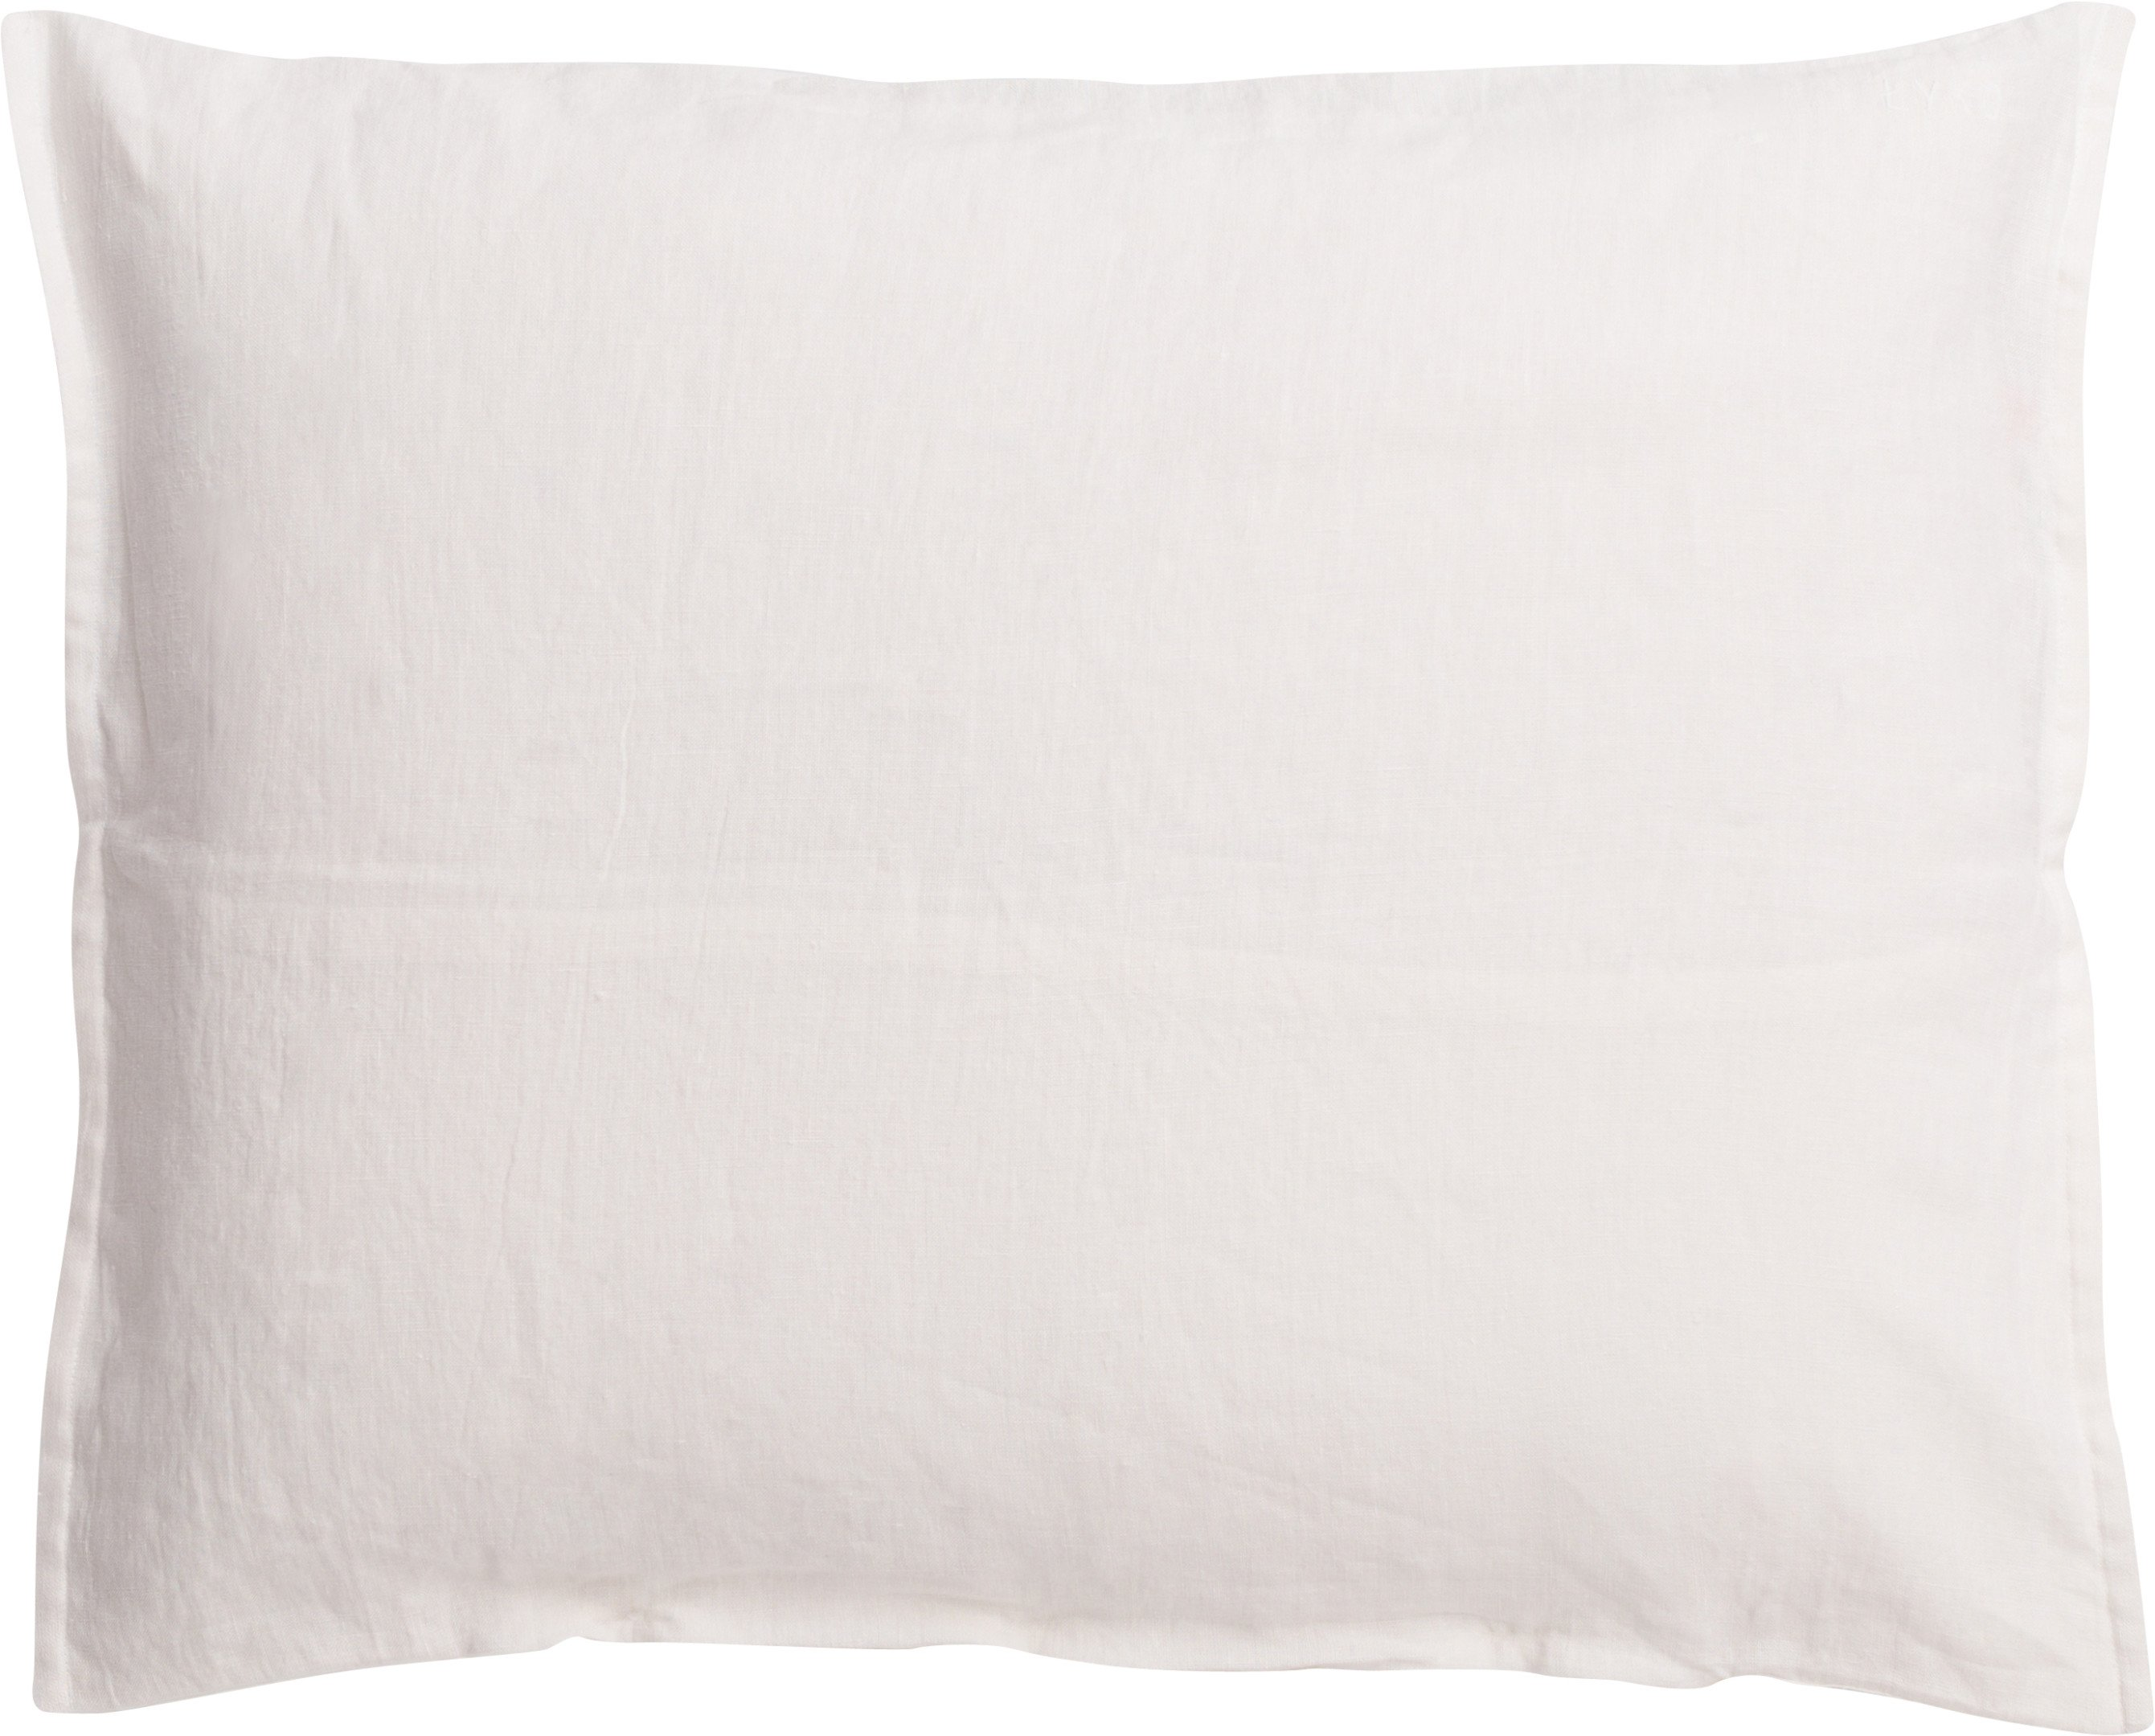 Linen Pillowcase, 50x60 cm Cream, Łyko